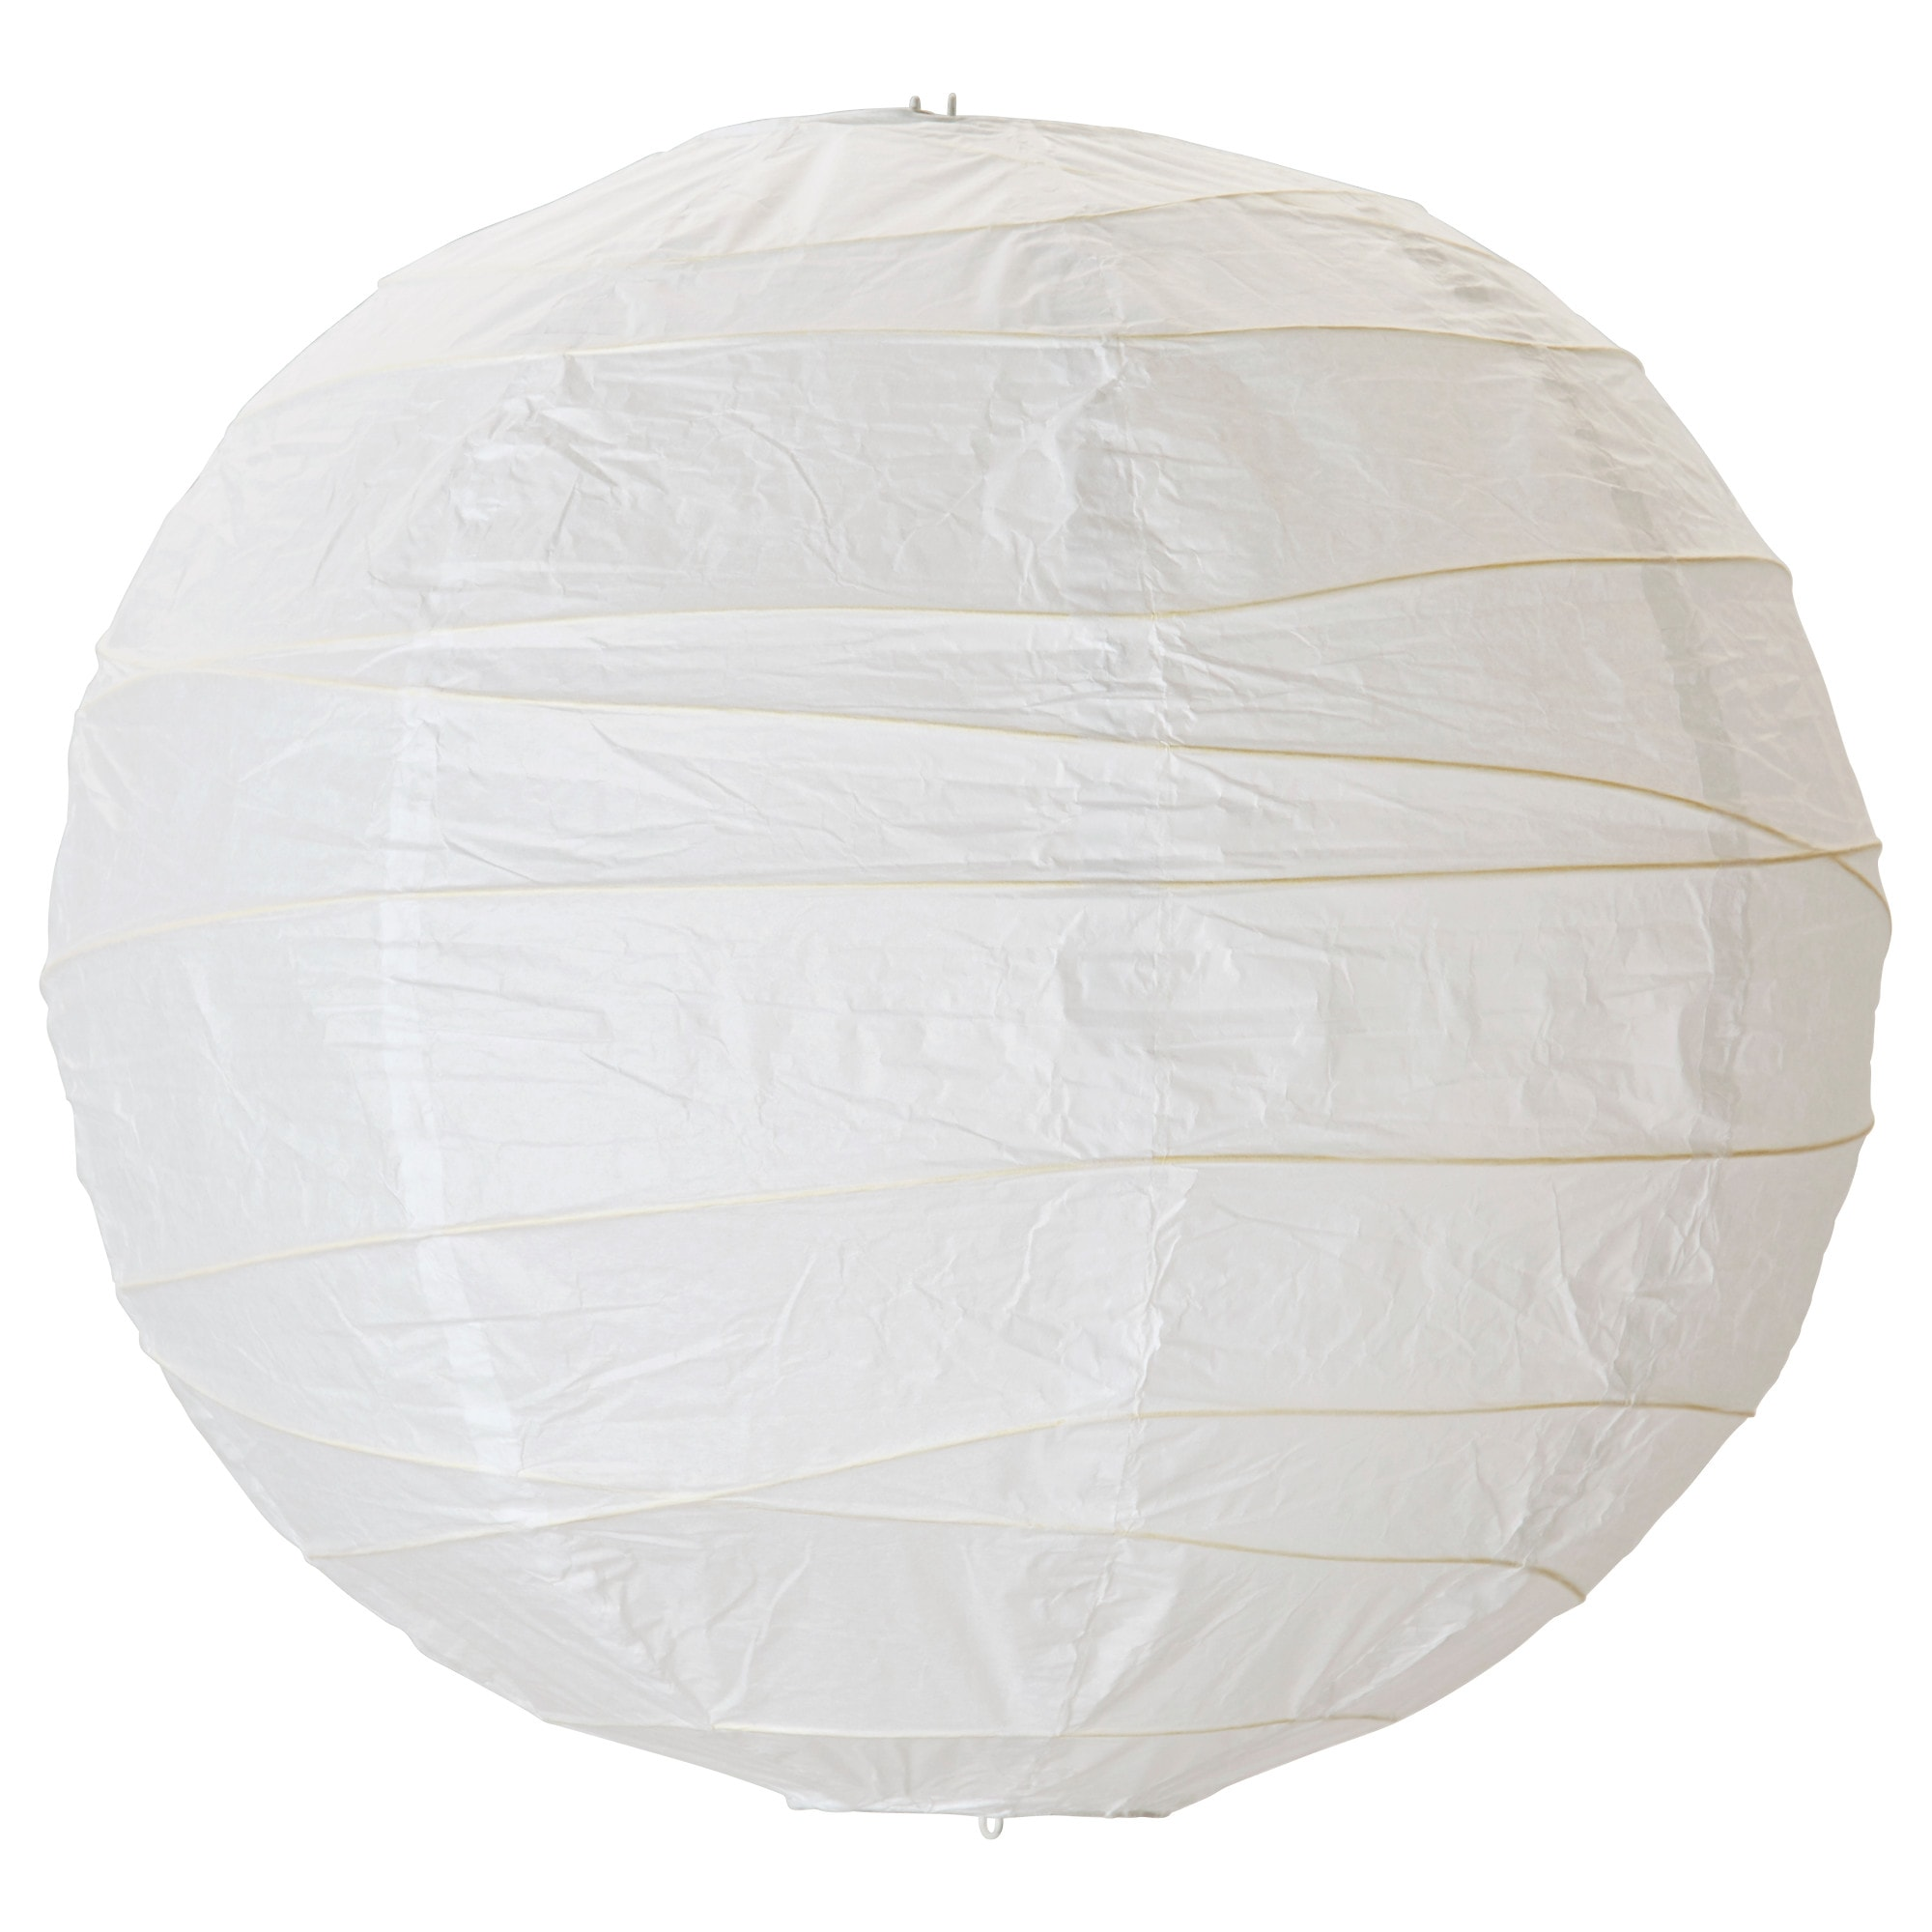 REGOLIT pendant lamp shade, white Diameter: 17